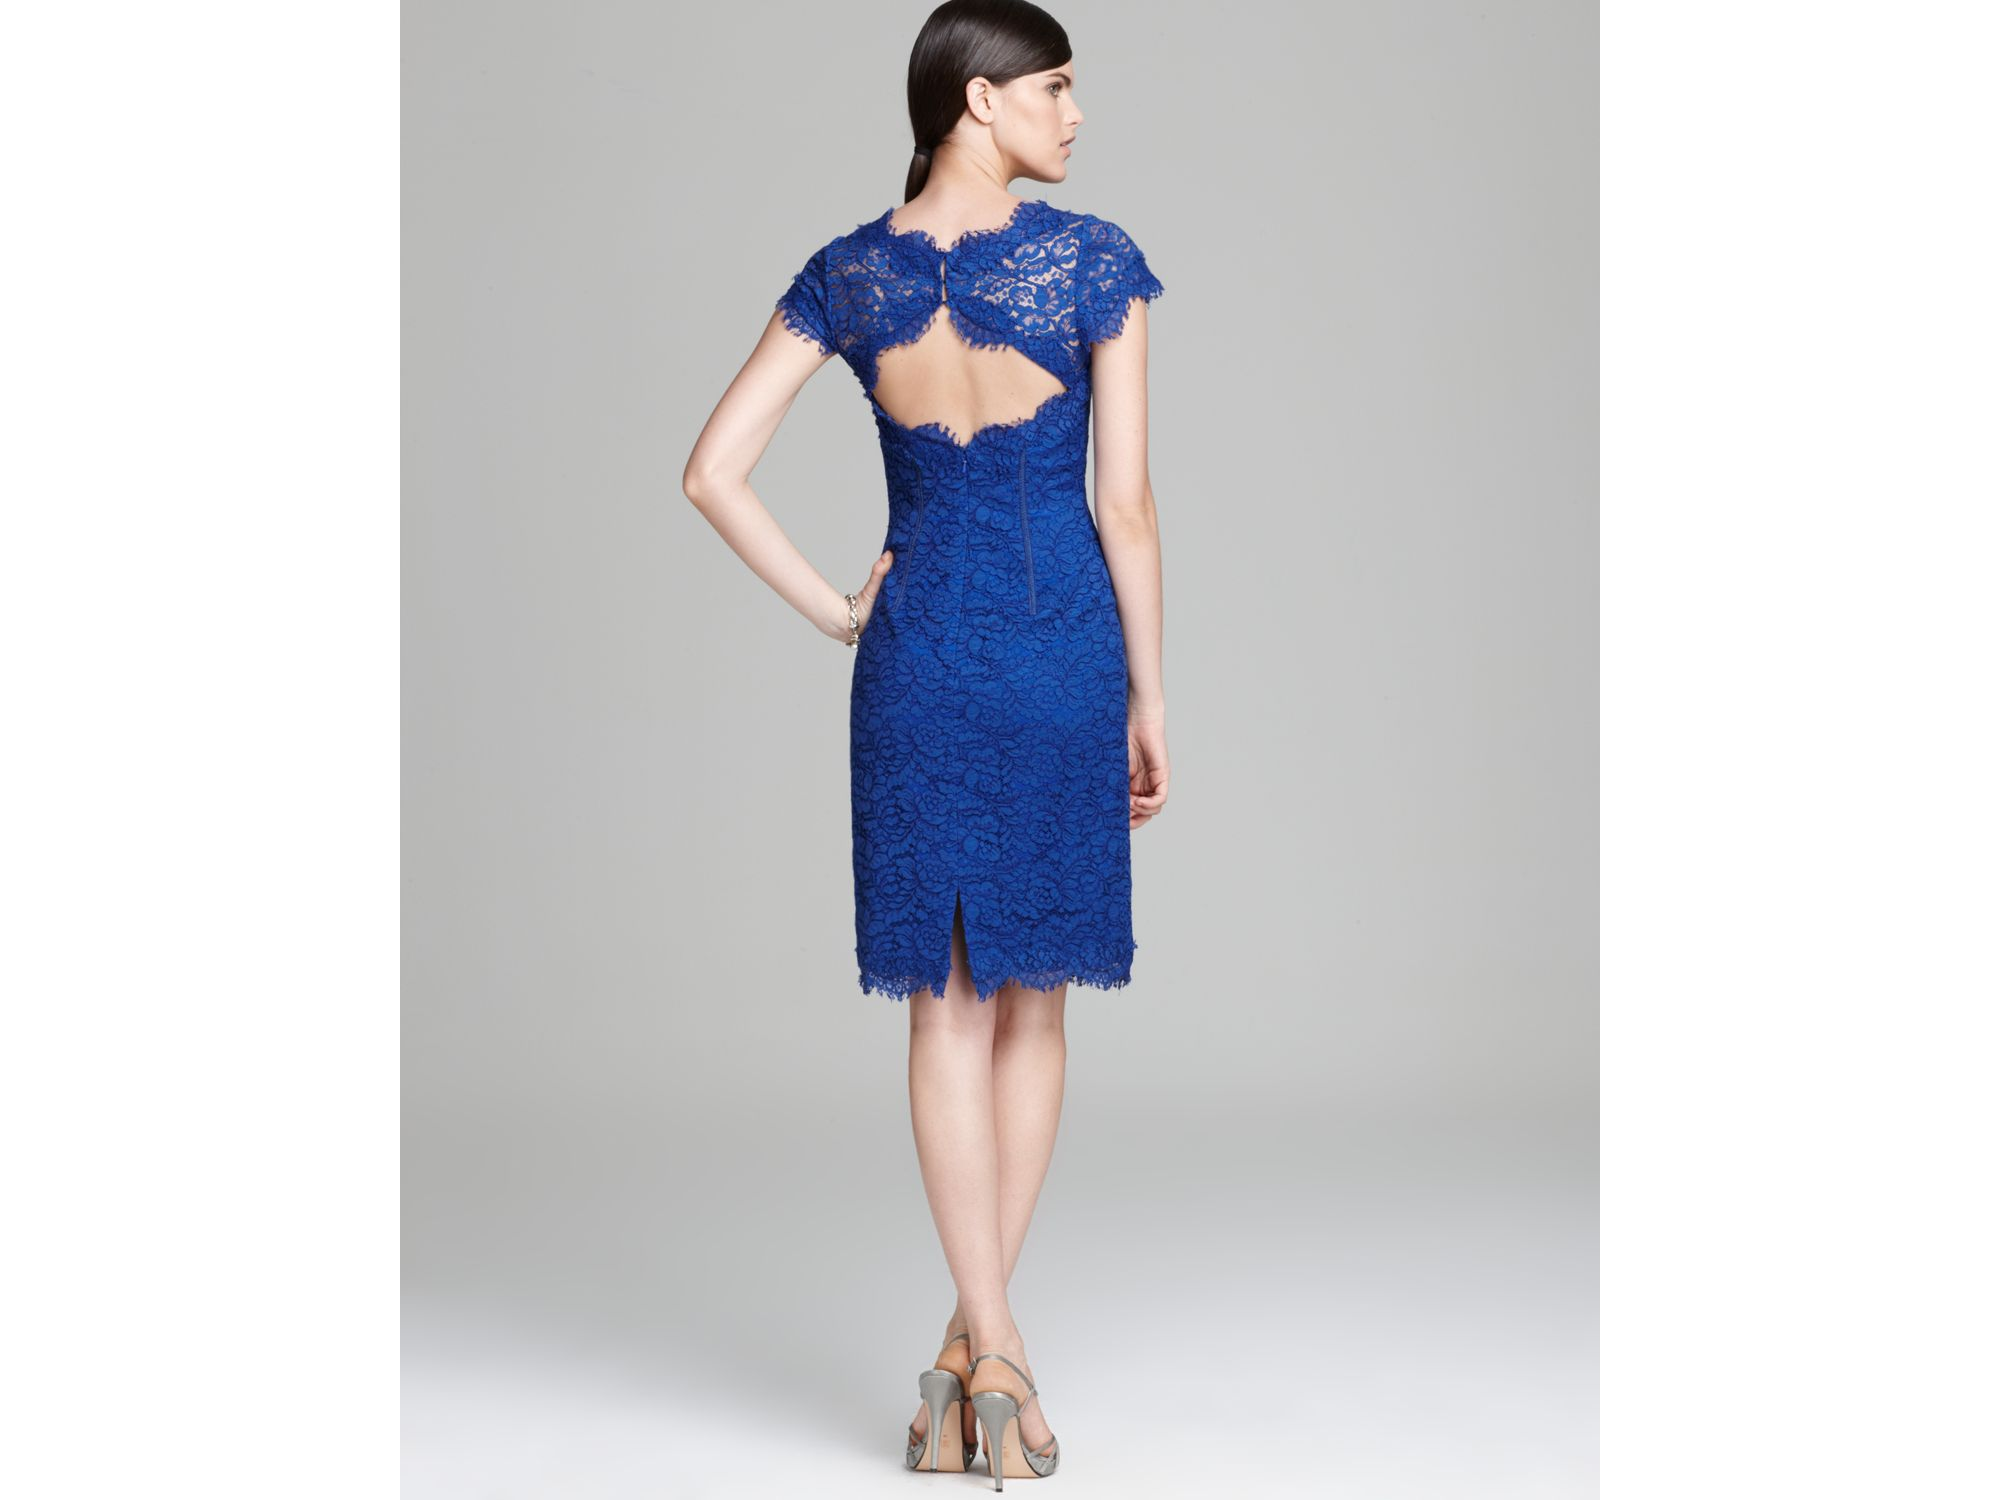 Lyst - Ml monique lhuillier Lace Dress Cap Sleeve Sheath in Blue